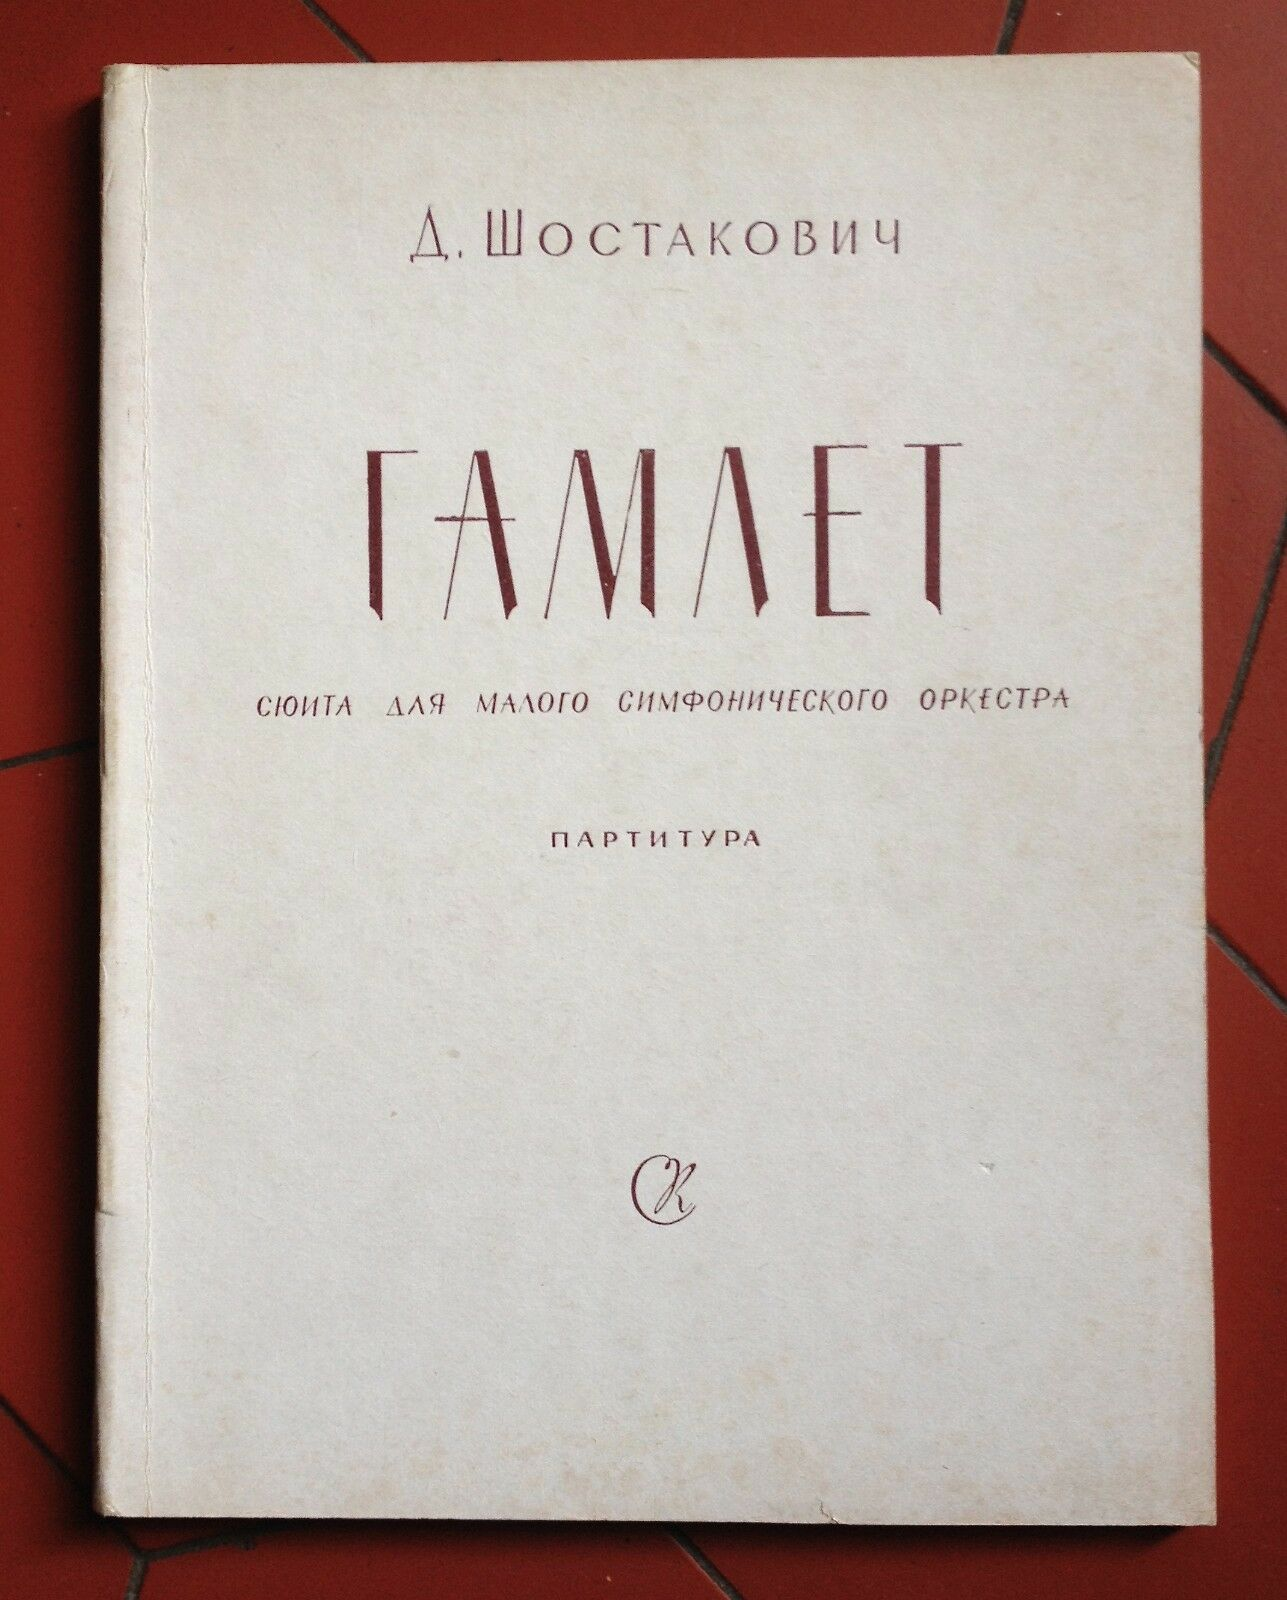 SHOSTAKOVICH DMITRY Score HAMLET Suite for small Symphony orchestra 1960.